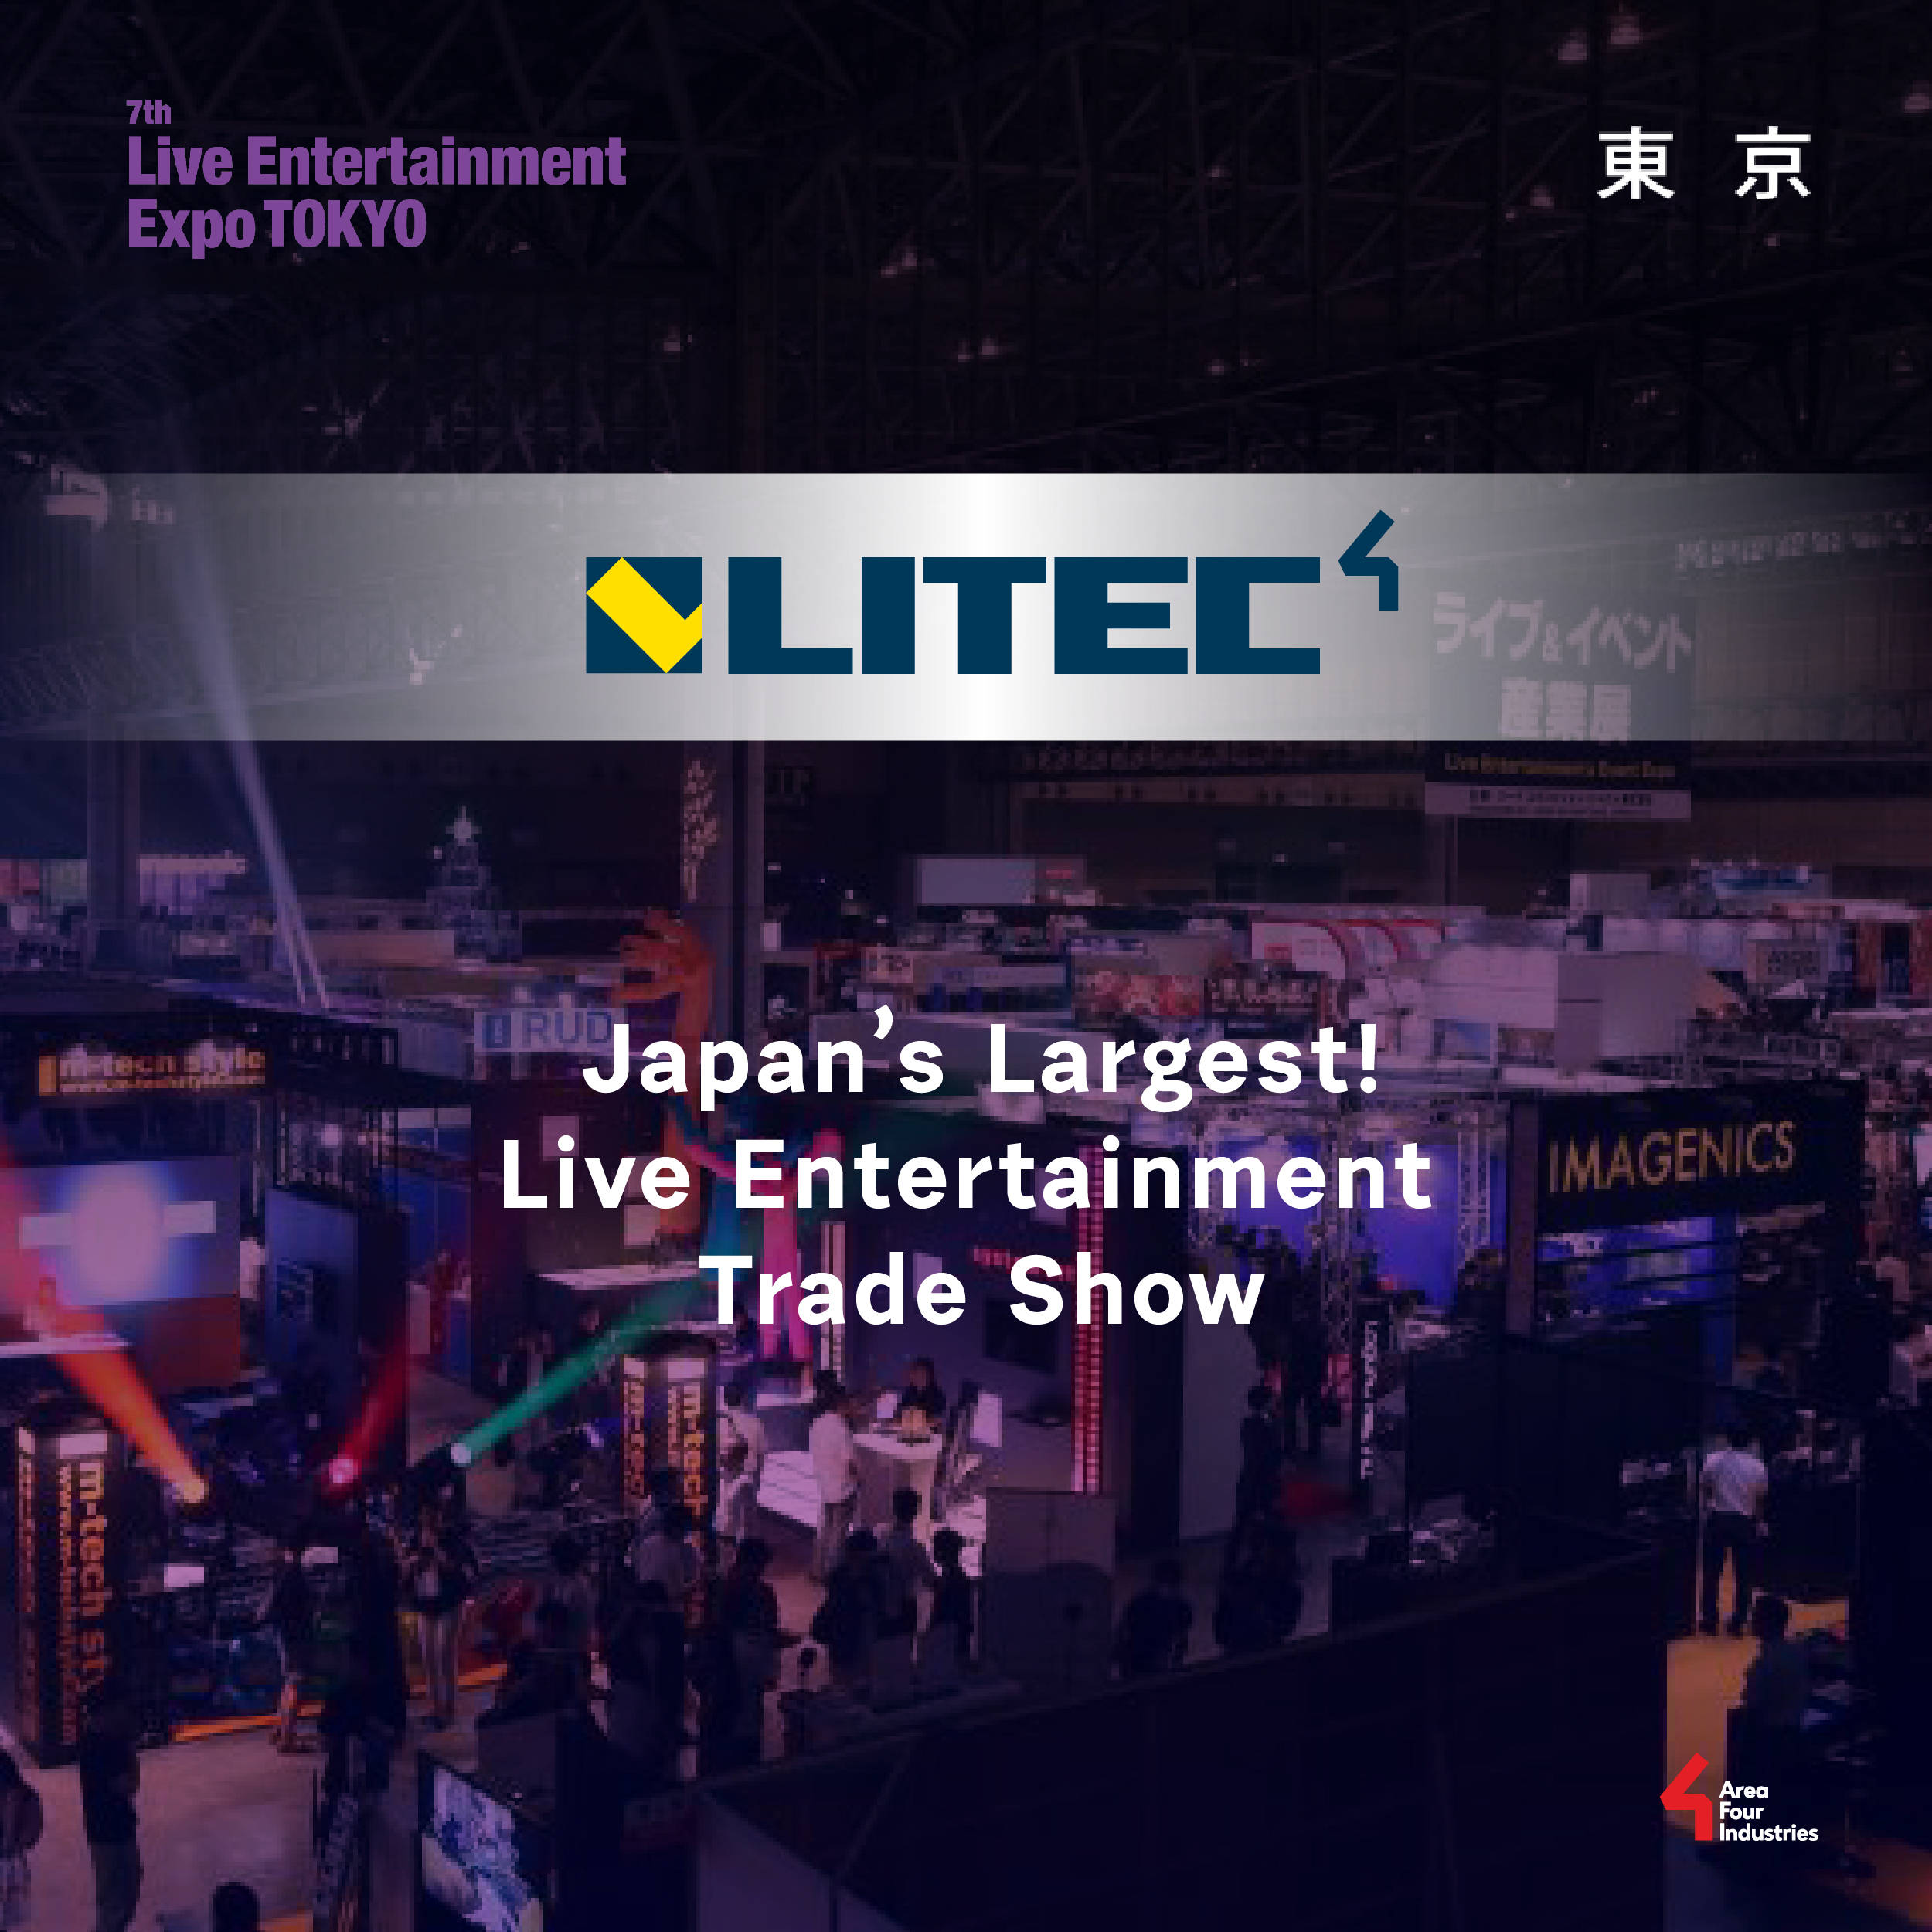 Japan's Largest! Live Entertainment Trade Show